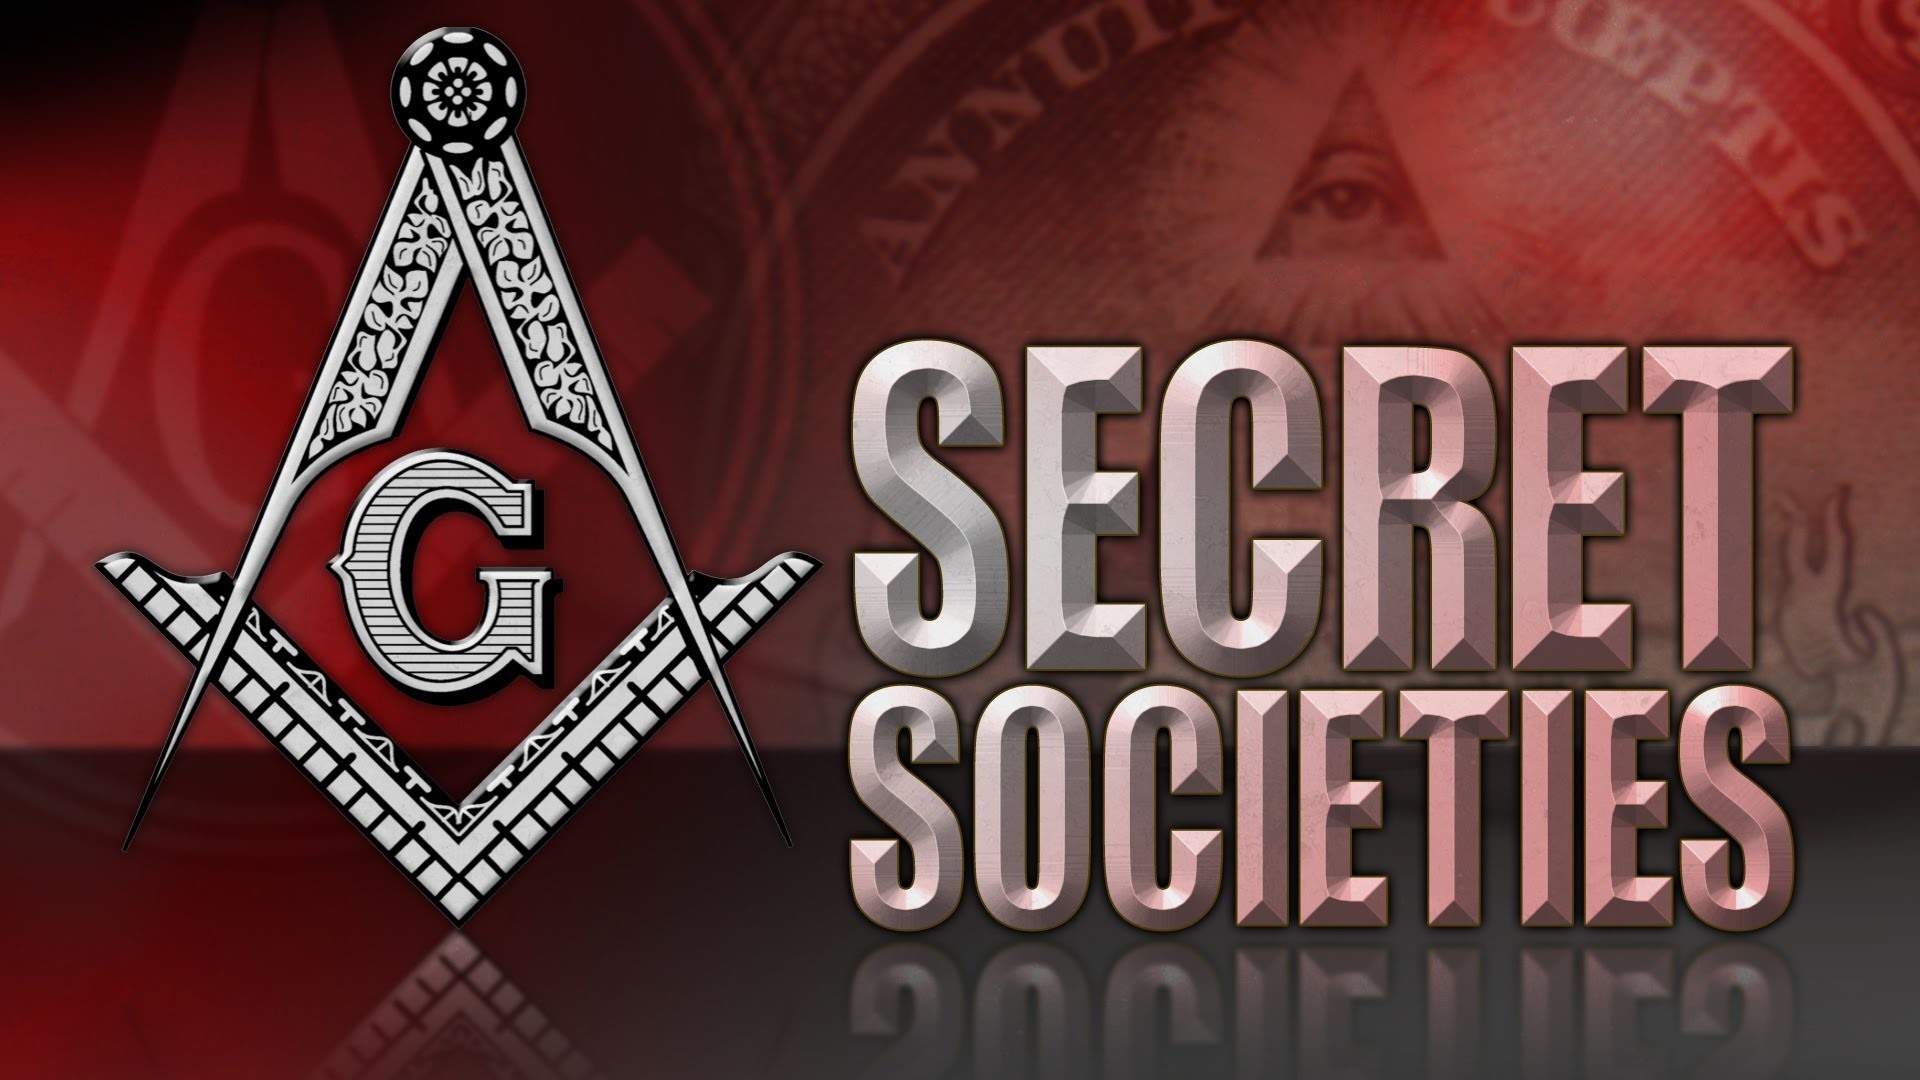 1920x1080 Secret Societies - Full Documentary - HD - Illuminati - Freemasonry -  YouTube